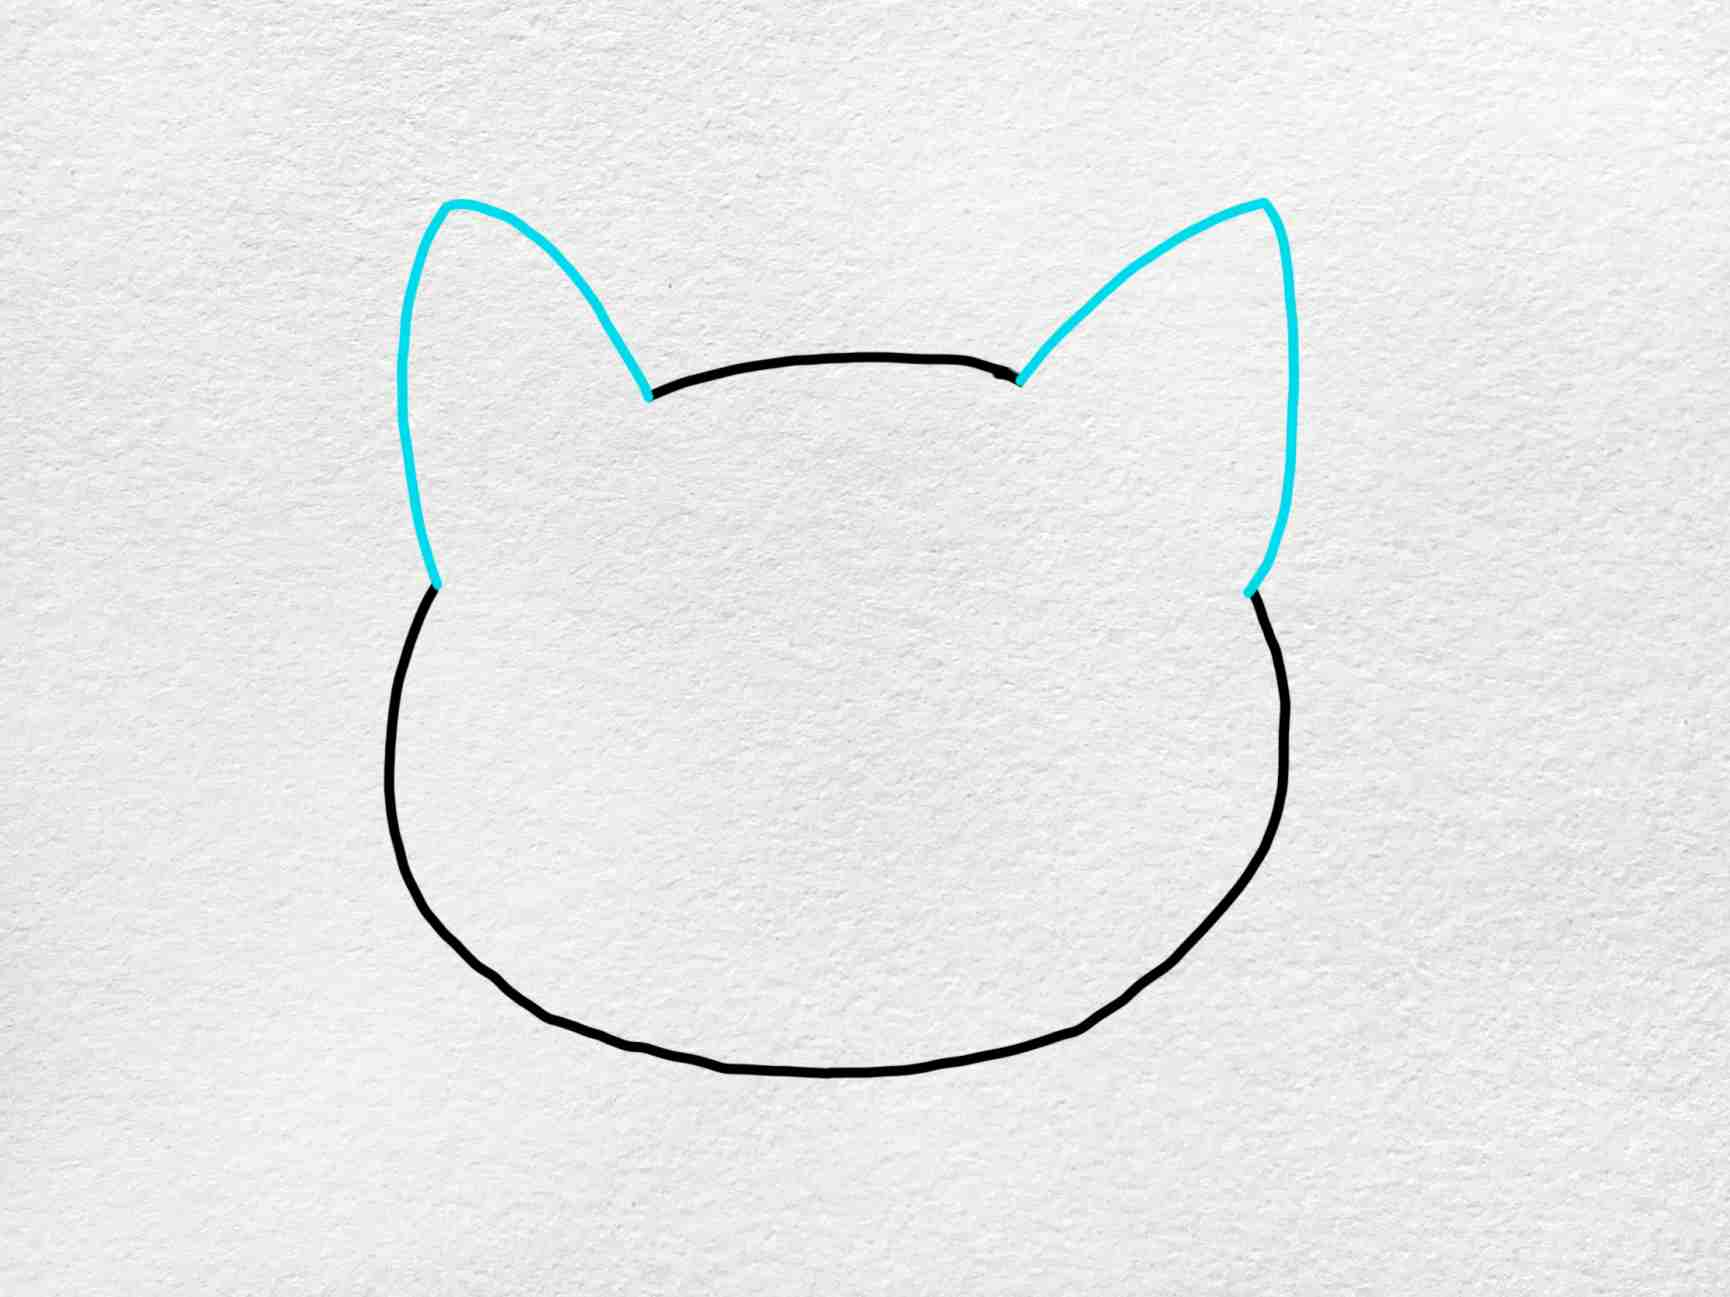 Easy Cat Face Drawing: Step 2